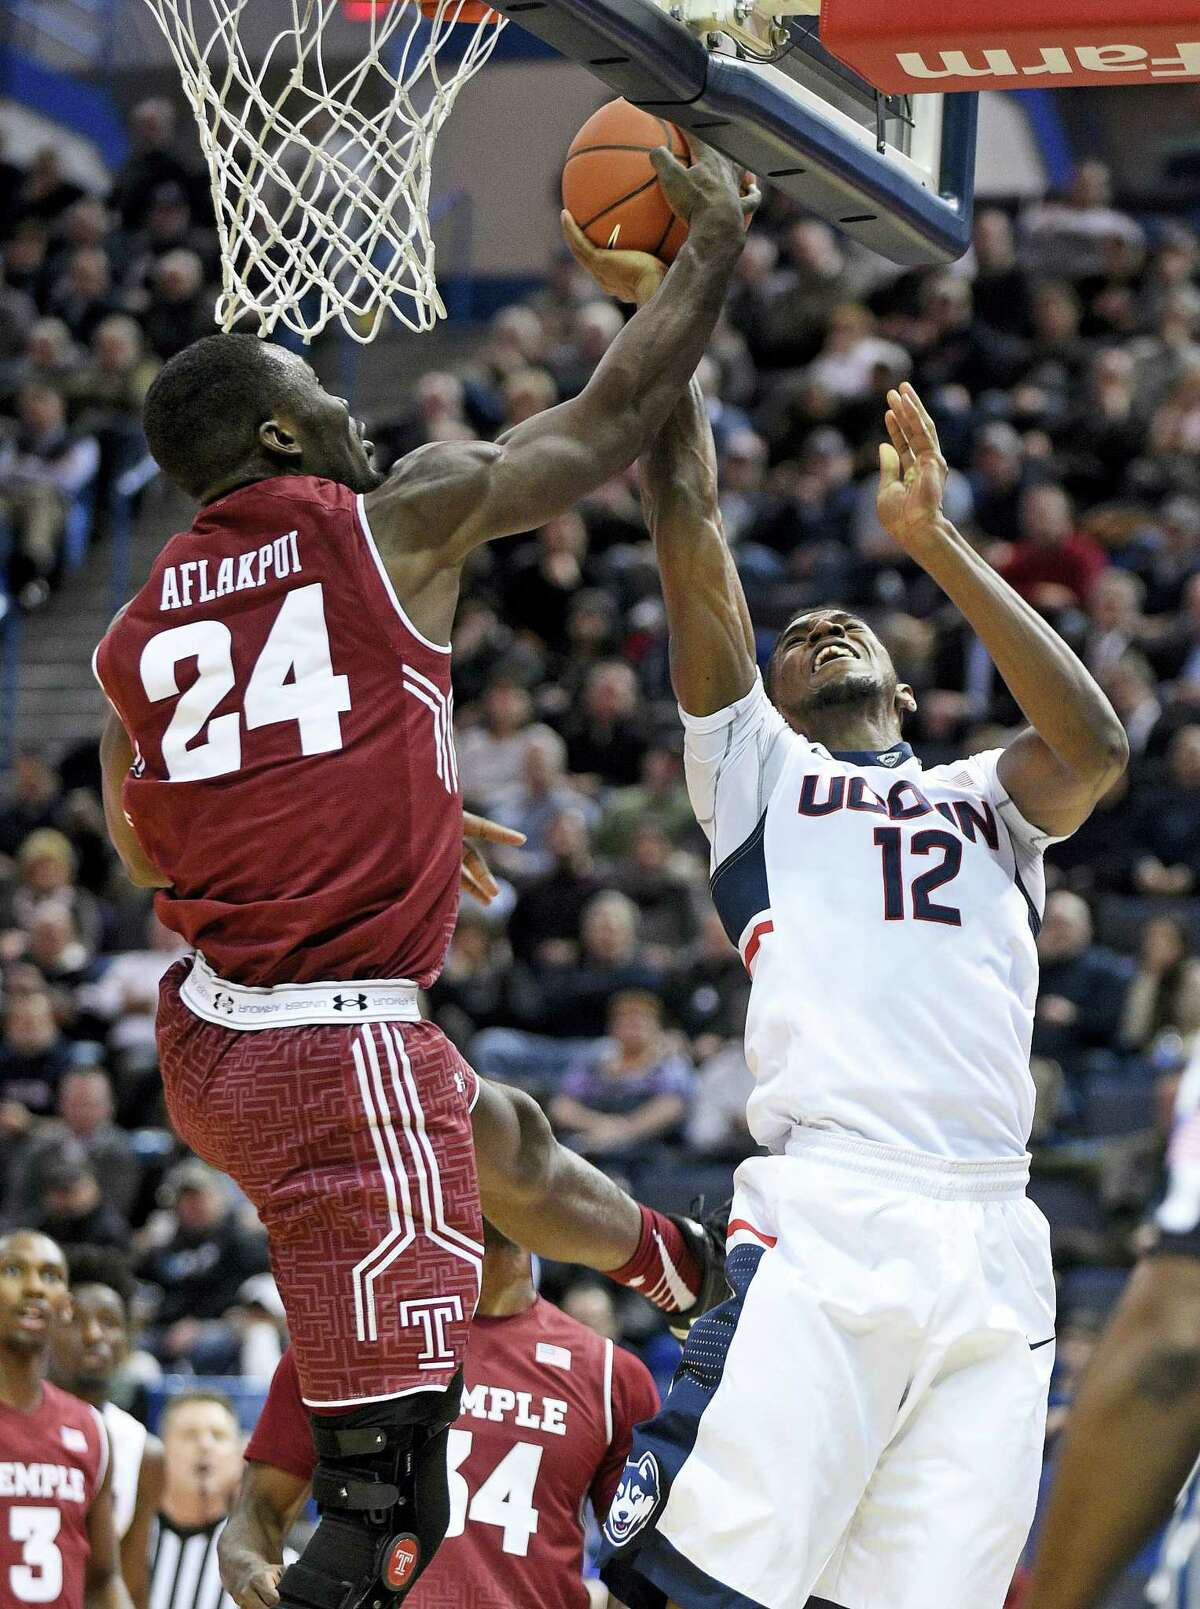 Temple's Ernest Aflakui (24) blocks the shot of Connecticut's Kentan Facey (12) during the first half of an NCAA college basketball game in Hartford, Conn., on Tuesday, Jan. 5, 2016. (AP Photo/Fred Beckham)